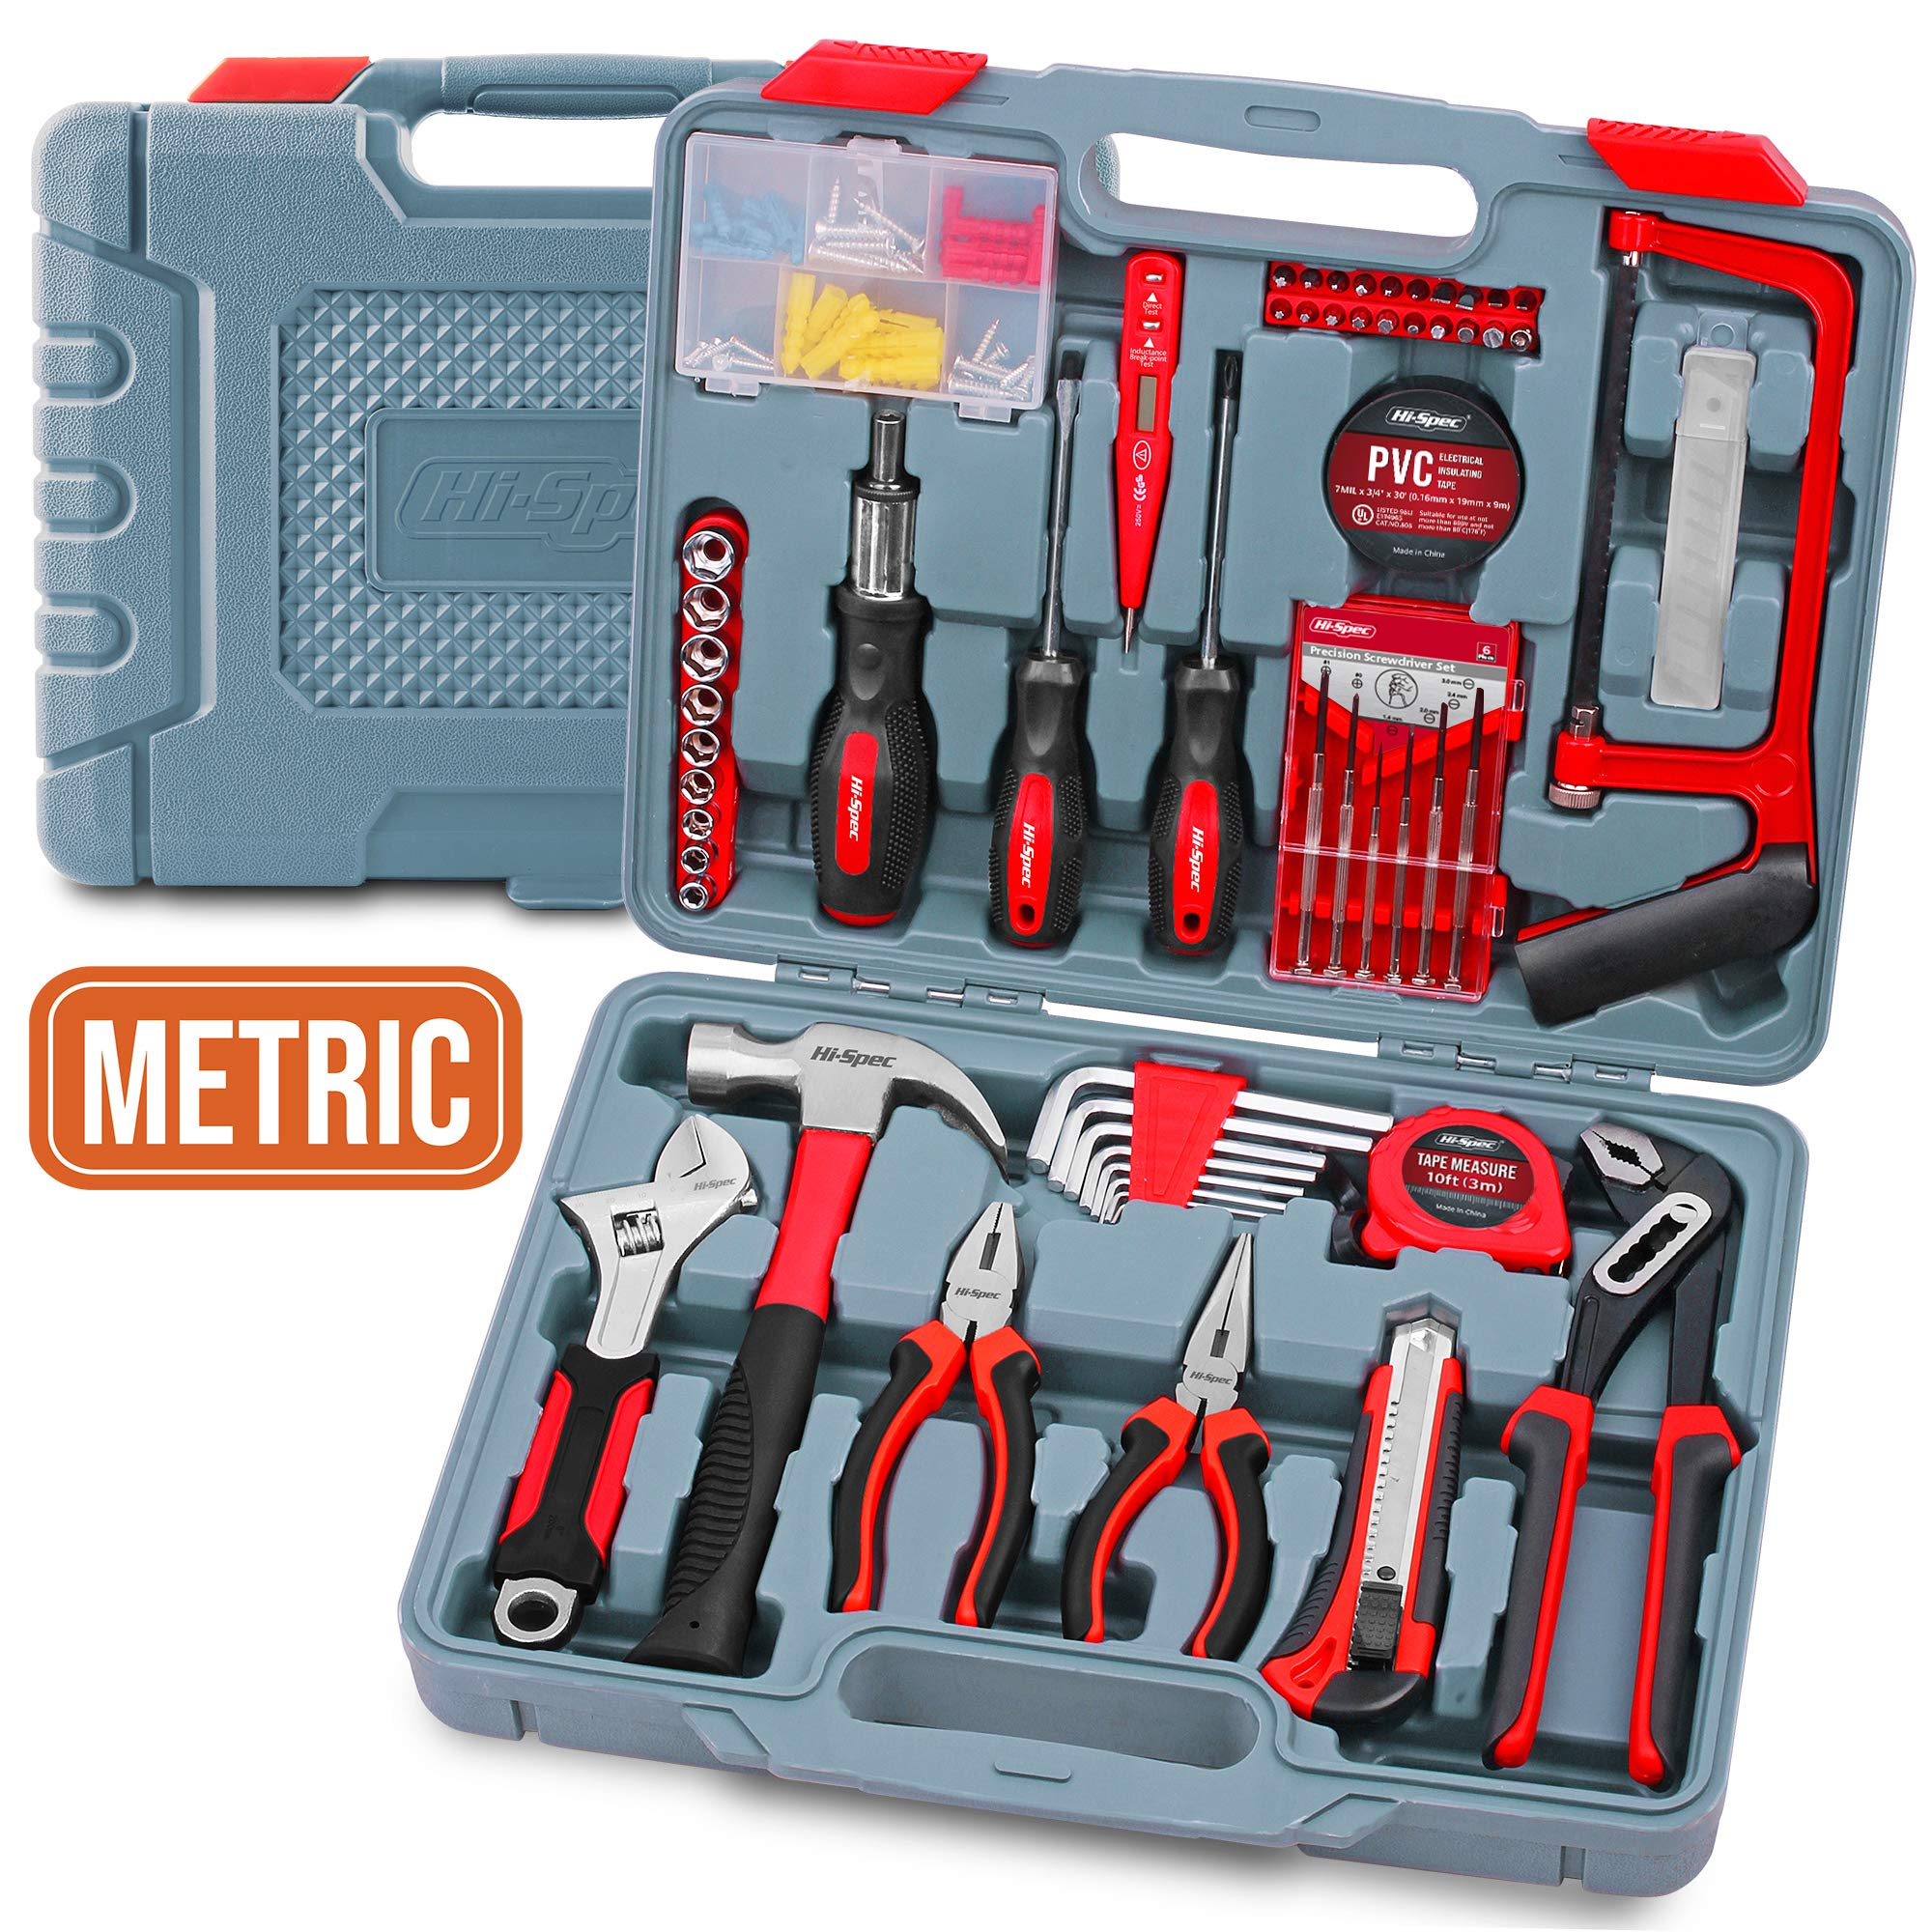 Home & Garage Tool Kit, Hi-Spec DT50103, Long Nose Tongue and Groove Pliers, Ratcheting Bit Driver, Claw Hammer, Hack Saw, Precision Screwdriver Set, Adjustable Wrench & Sockets Tool Set, 120 pieces by Hi-Spec